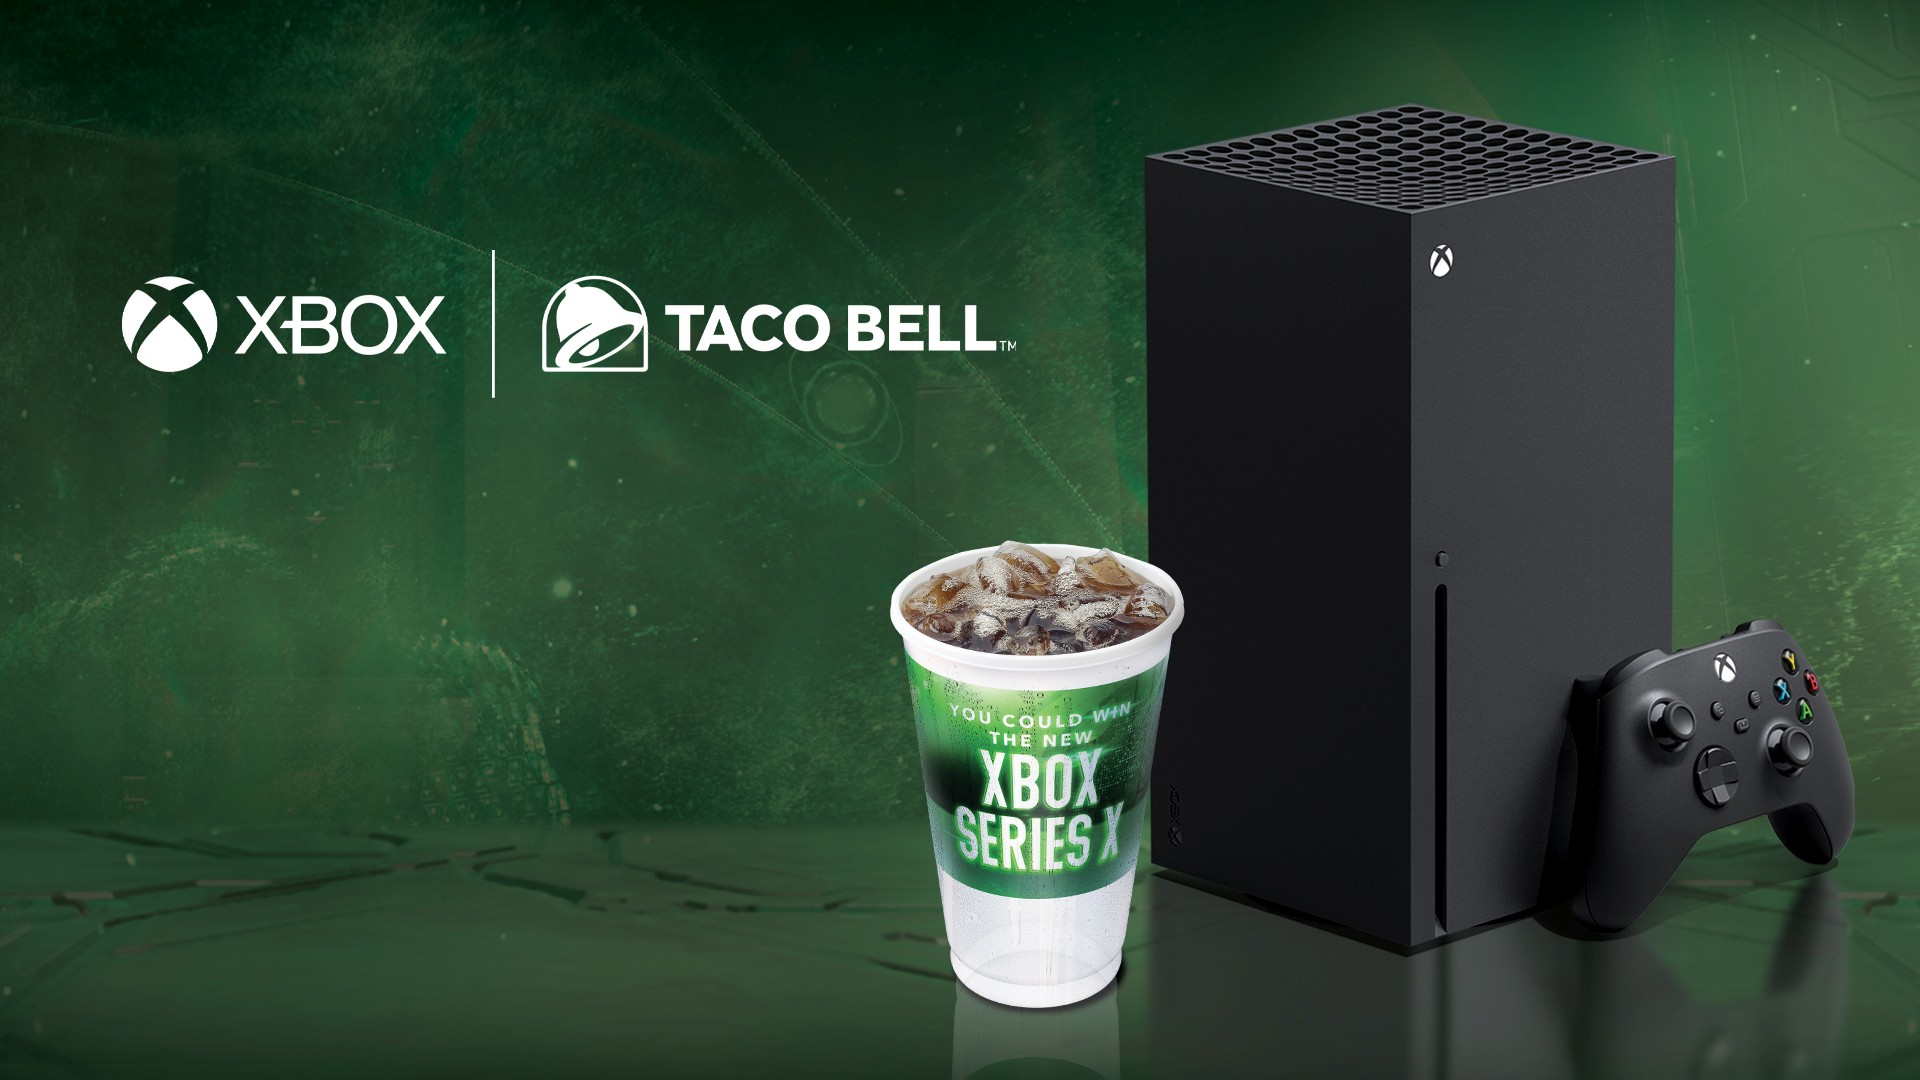 Xbox And Taco Bell Are Giving Fans The Chance To Win An Xbox Series X Before They Can Buy It Xbox Wire